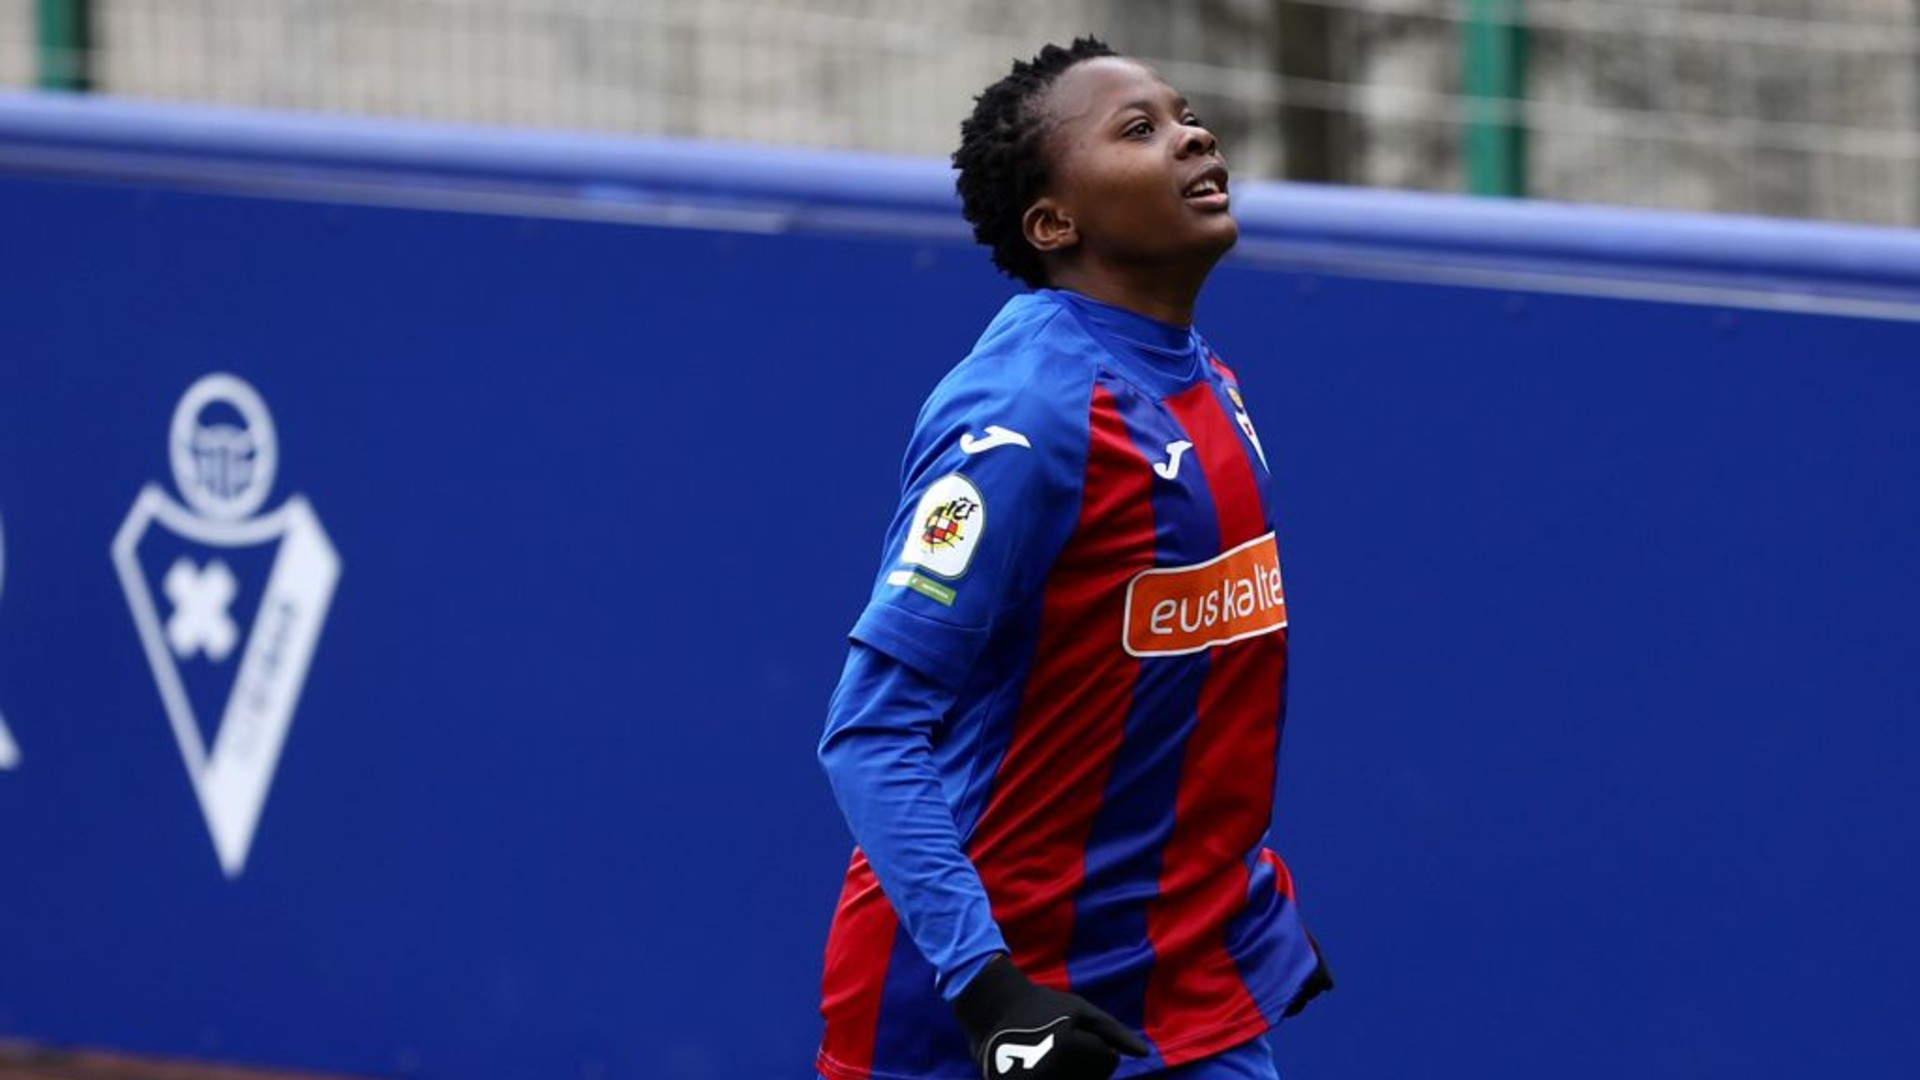 Kgatlana continues goalscoring form for Eibar as Payne fires warning at Zambia with Sevilla goal